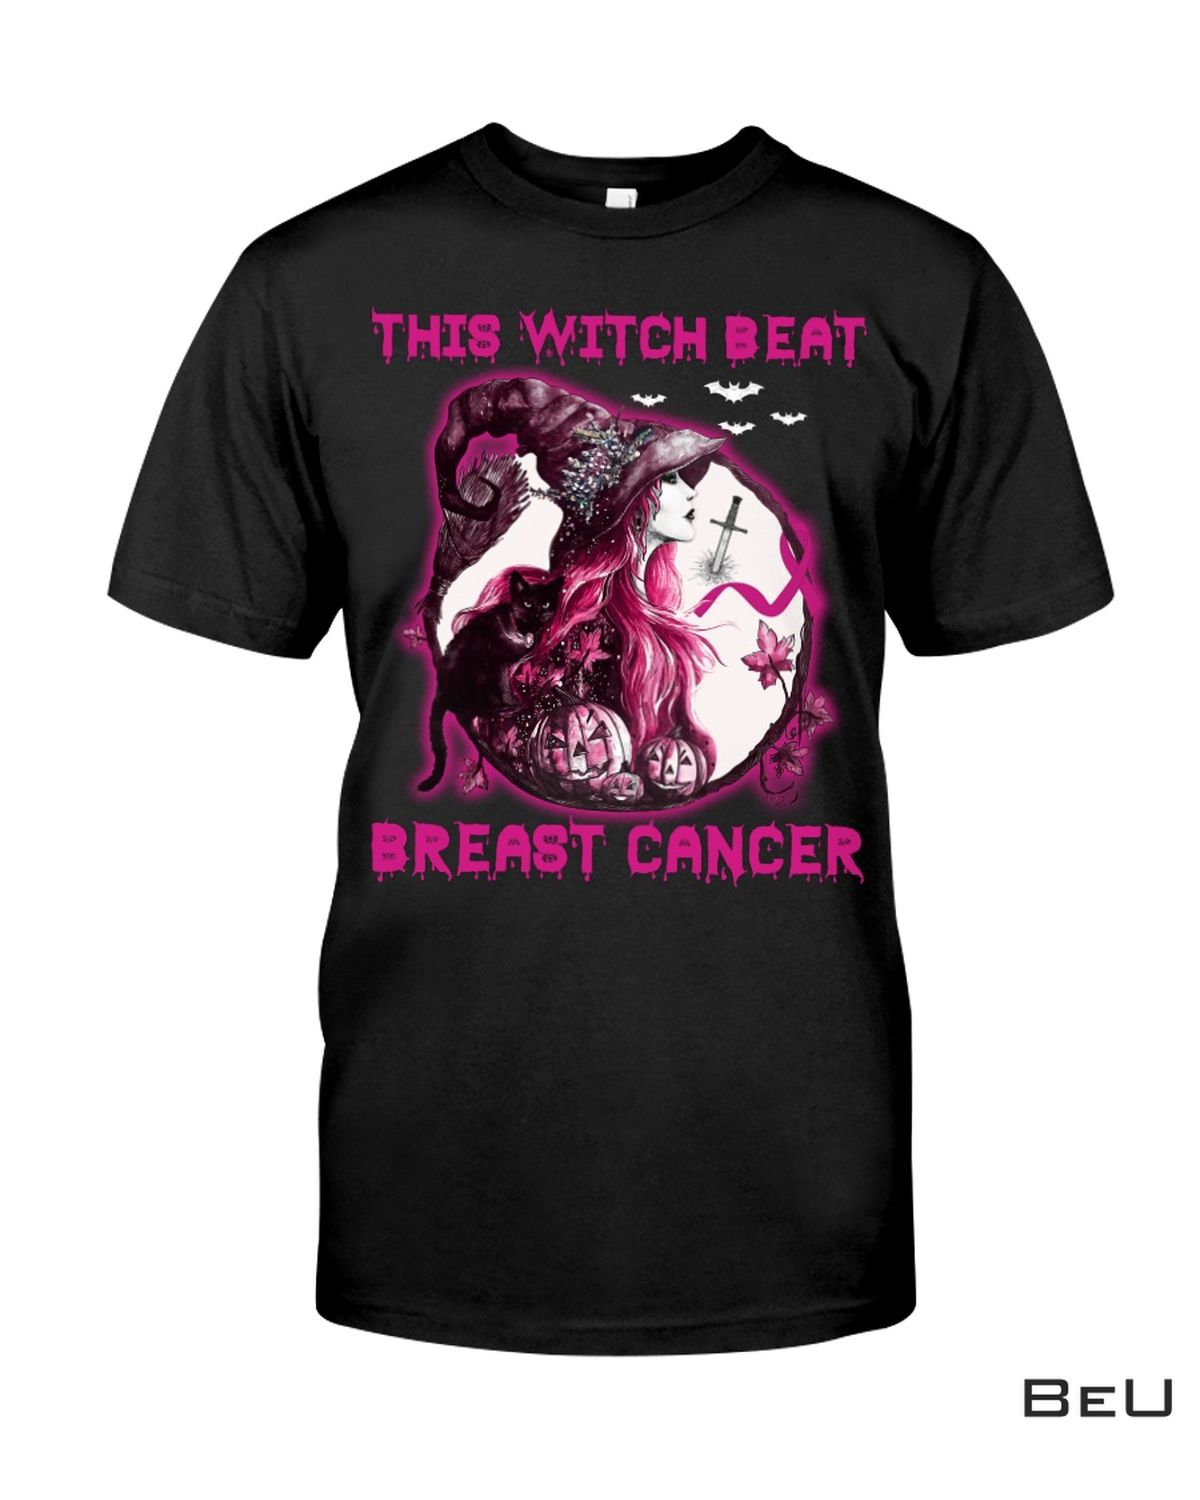 This Witch Beat Breast Cancer Shirt, hoodie, tank top